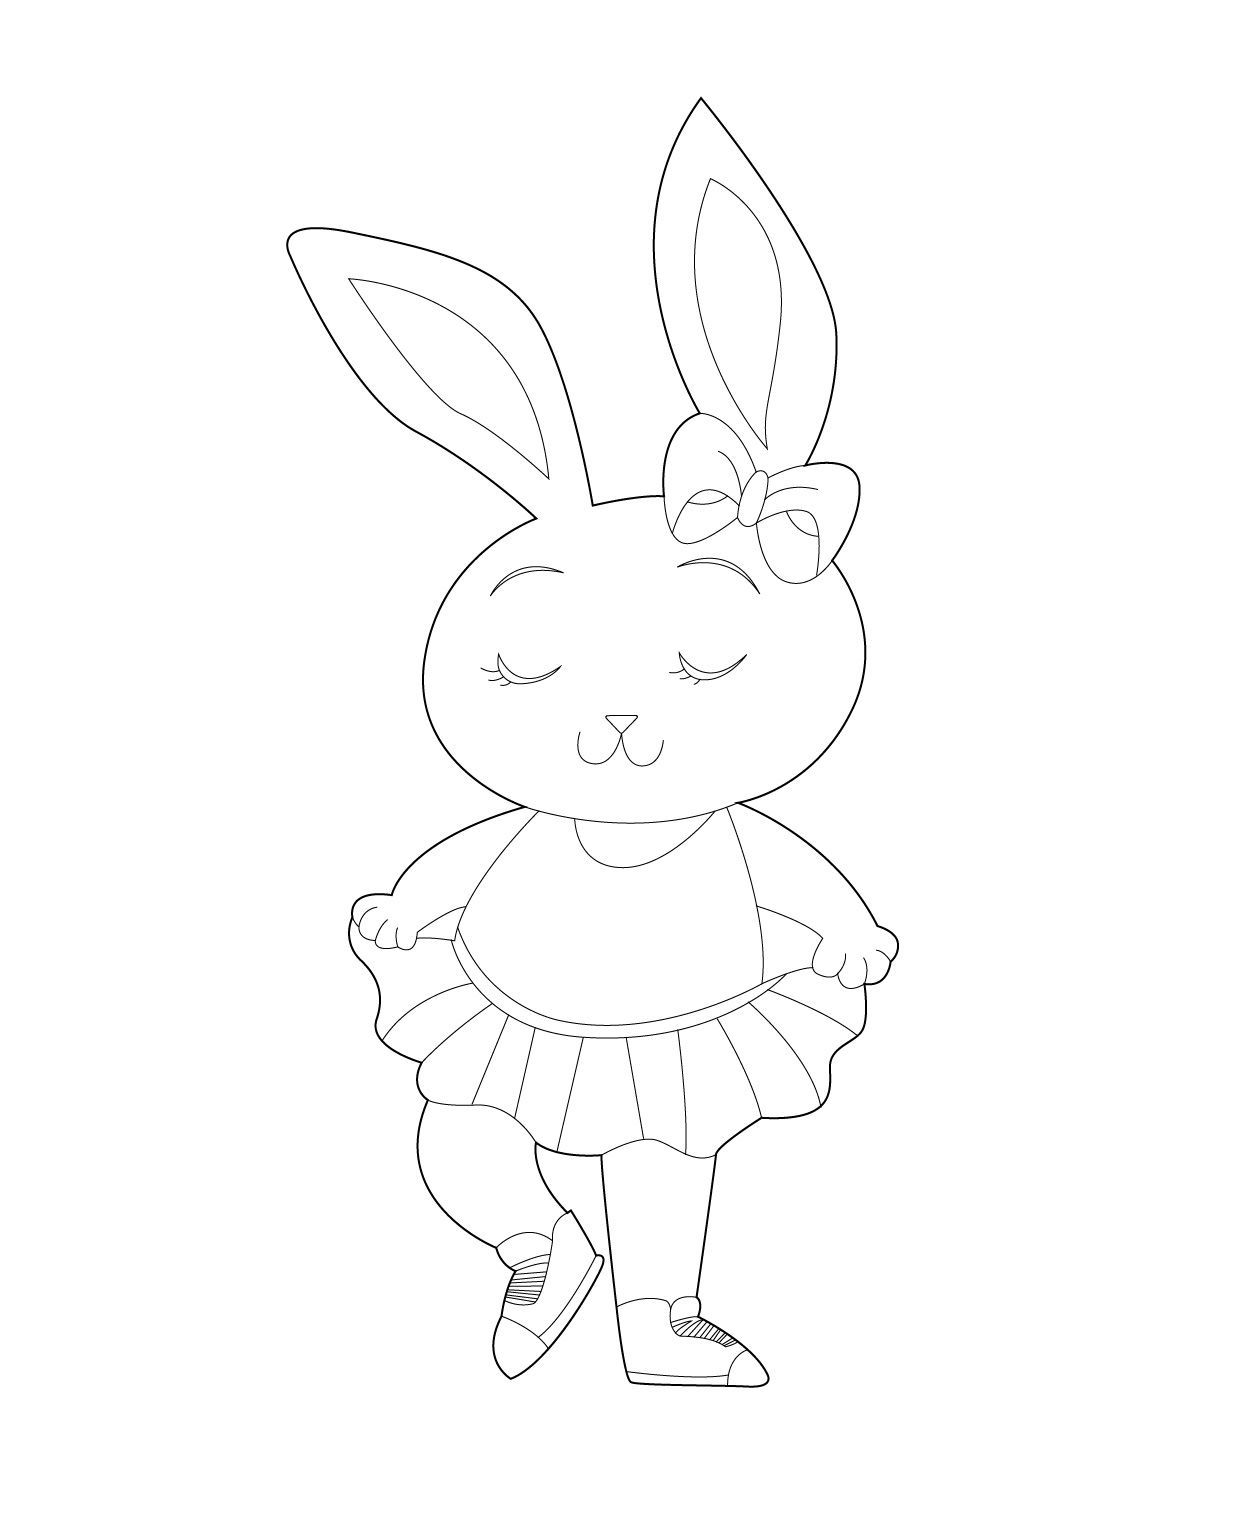 Download Your Free Bella Bunny Coloring Pages Bella Bunny Is A Body Positive Children S Book To Help Yo Bunny Coloring Pages Coloring Pages Children S Author